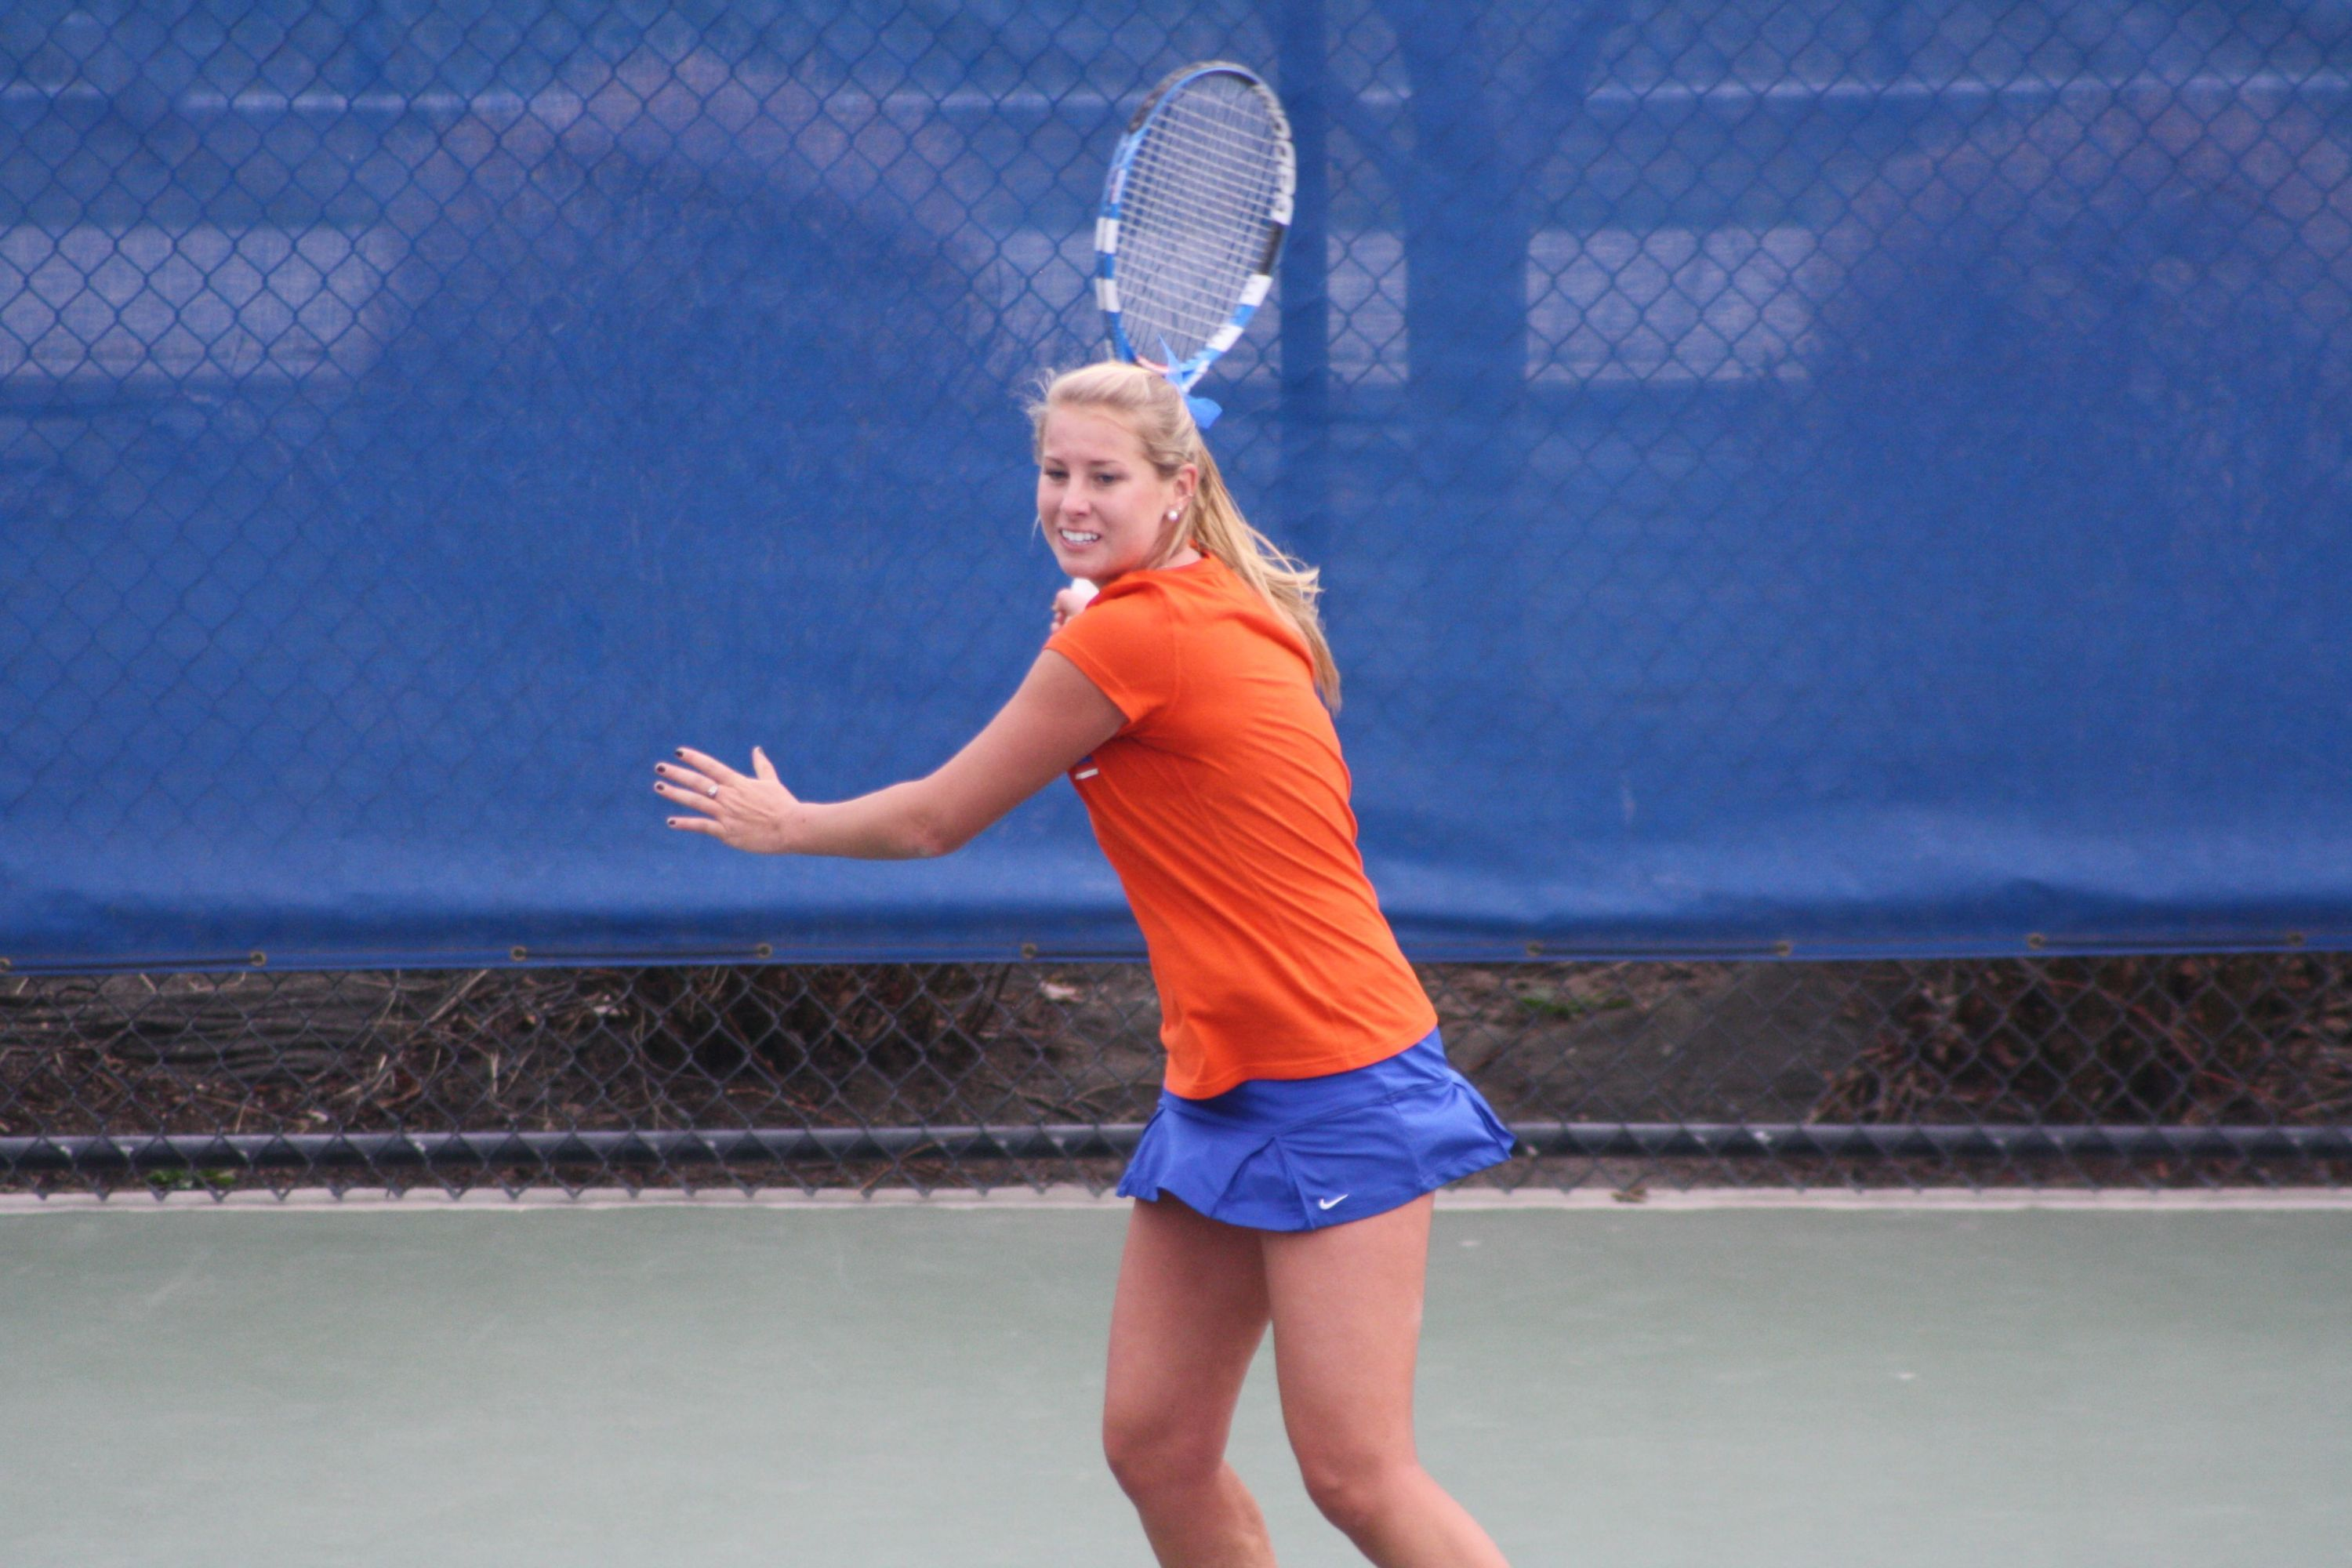 Morgan Basil victory on court three clinched the match